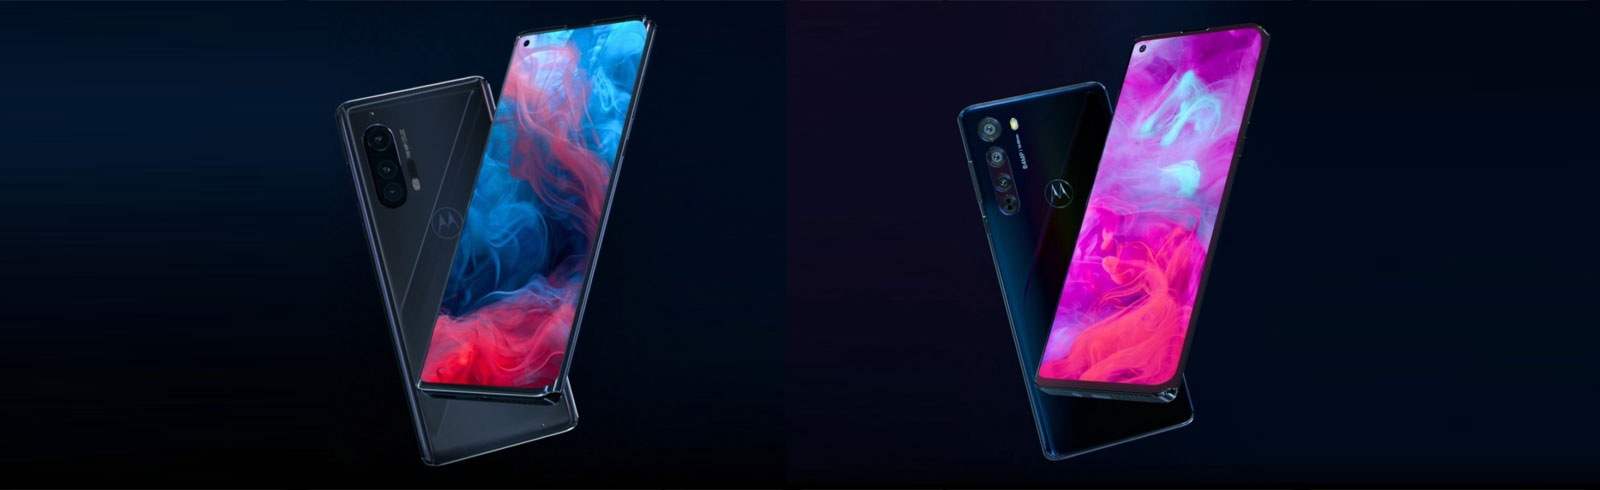 Motorola Edge and Motorola Edge+ are announced - specifications and prices